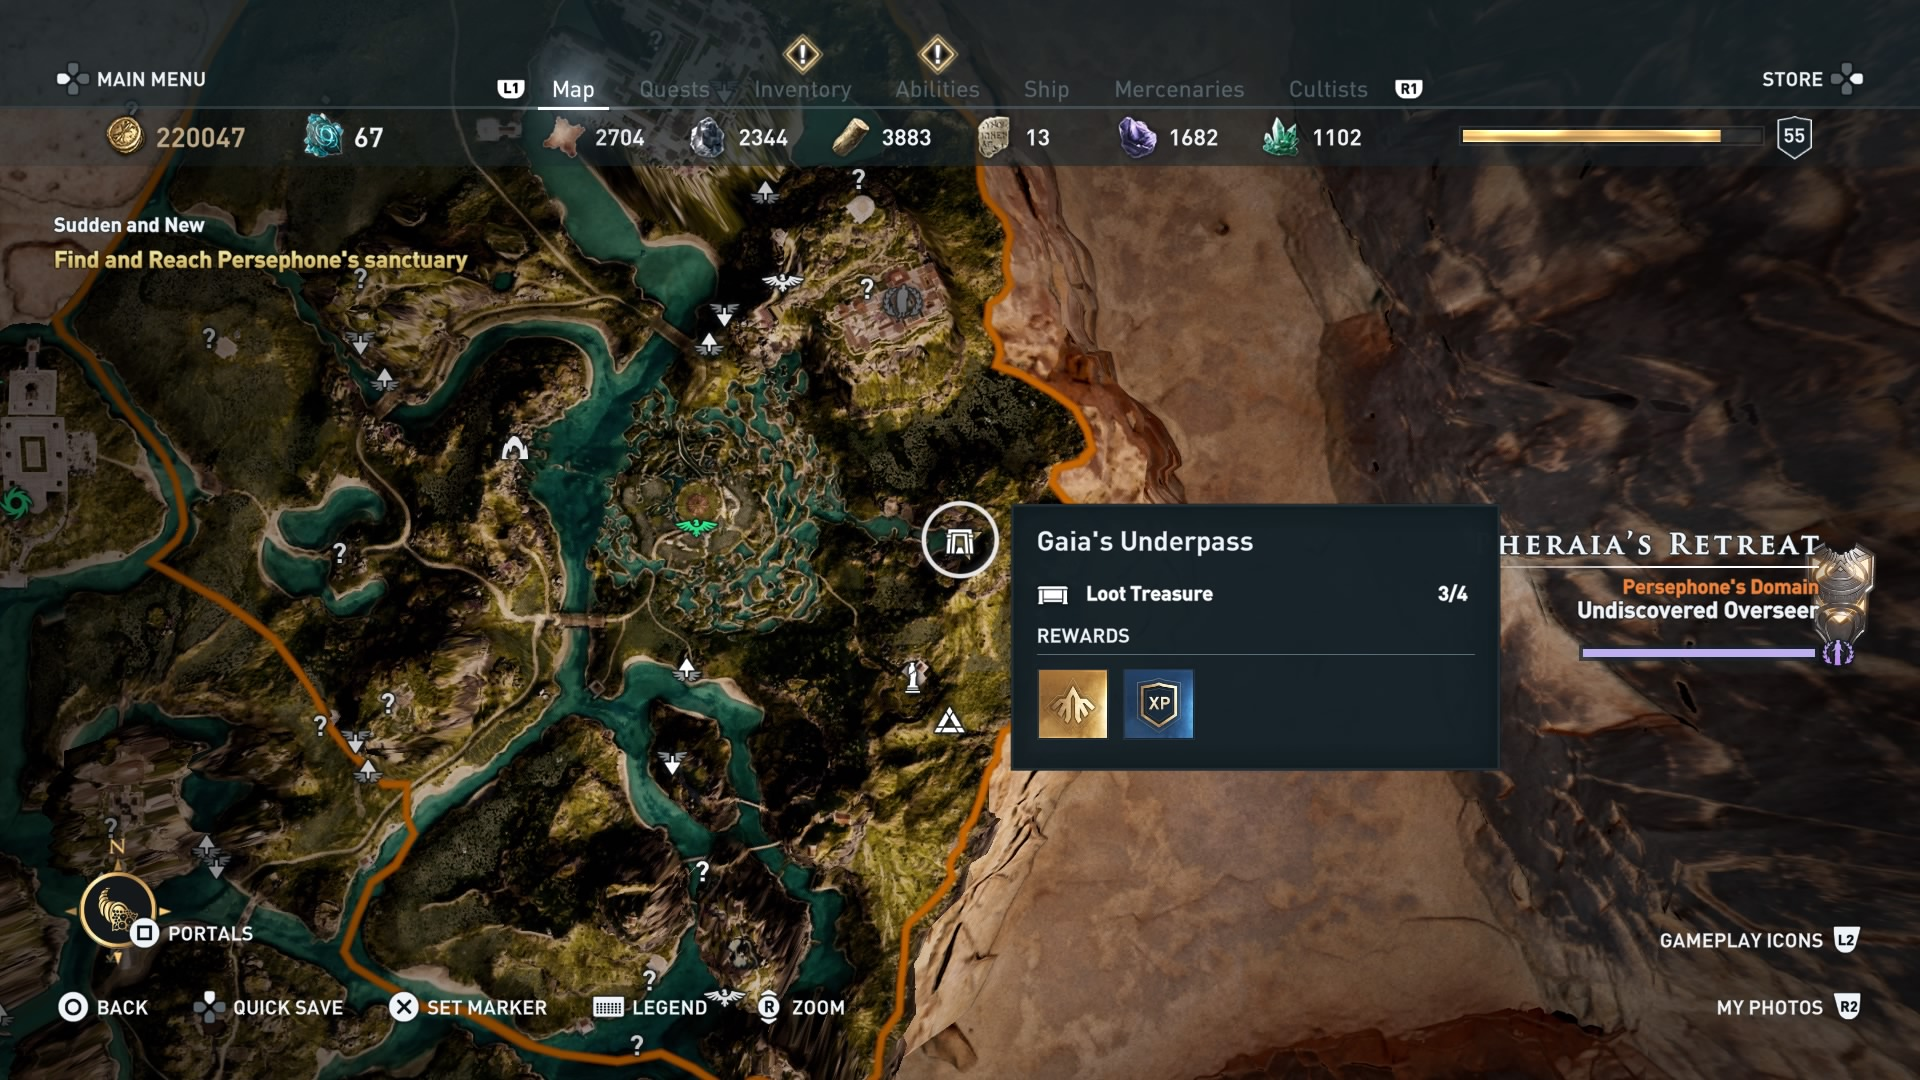 GAMING ZONE : Assassin's Creed Odyssey: Keeper's Insights guide